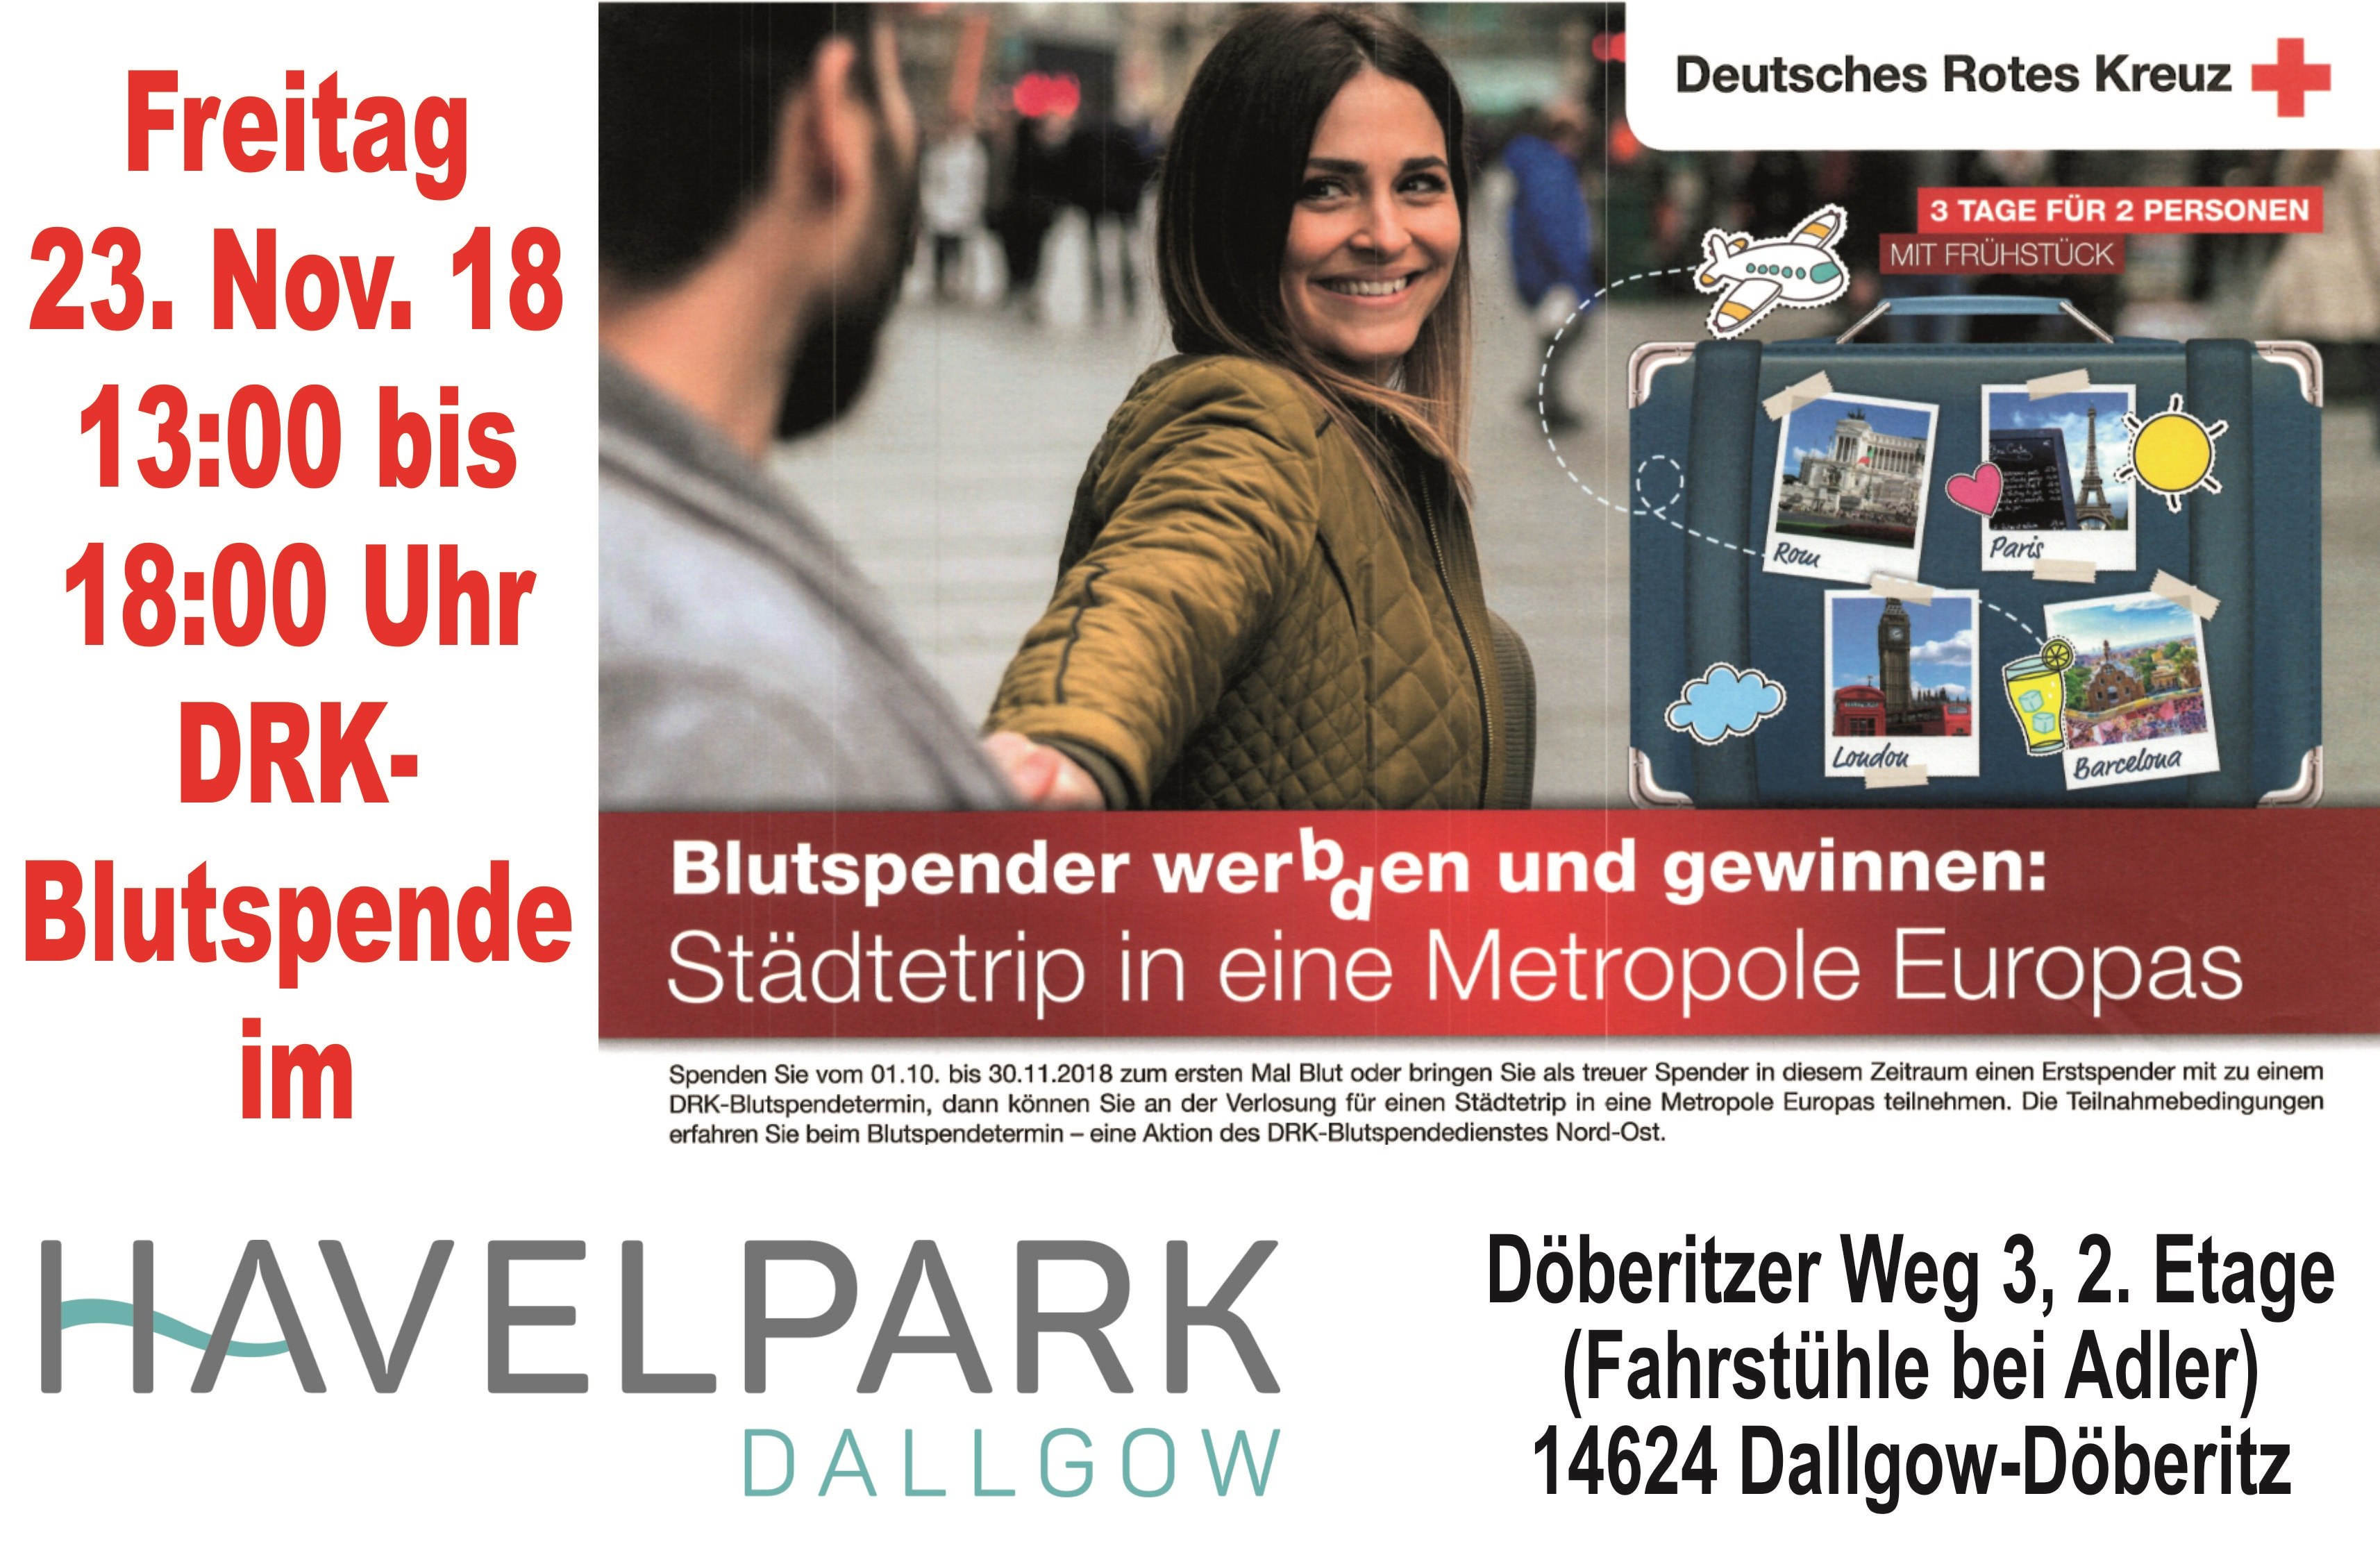 Blutspendeaktion am 23. November 2018